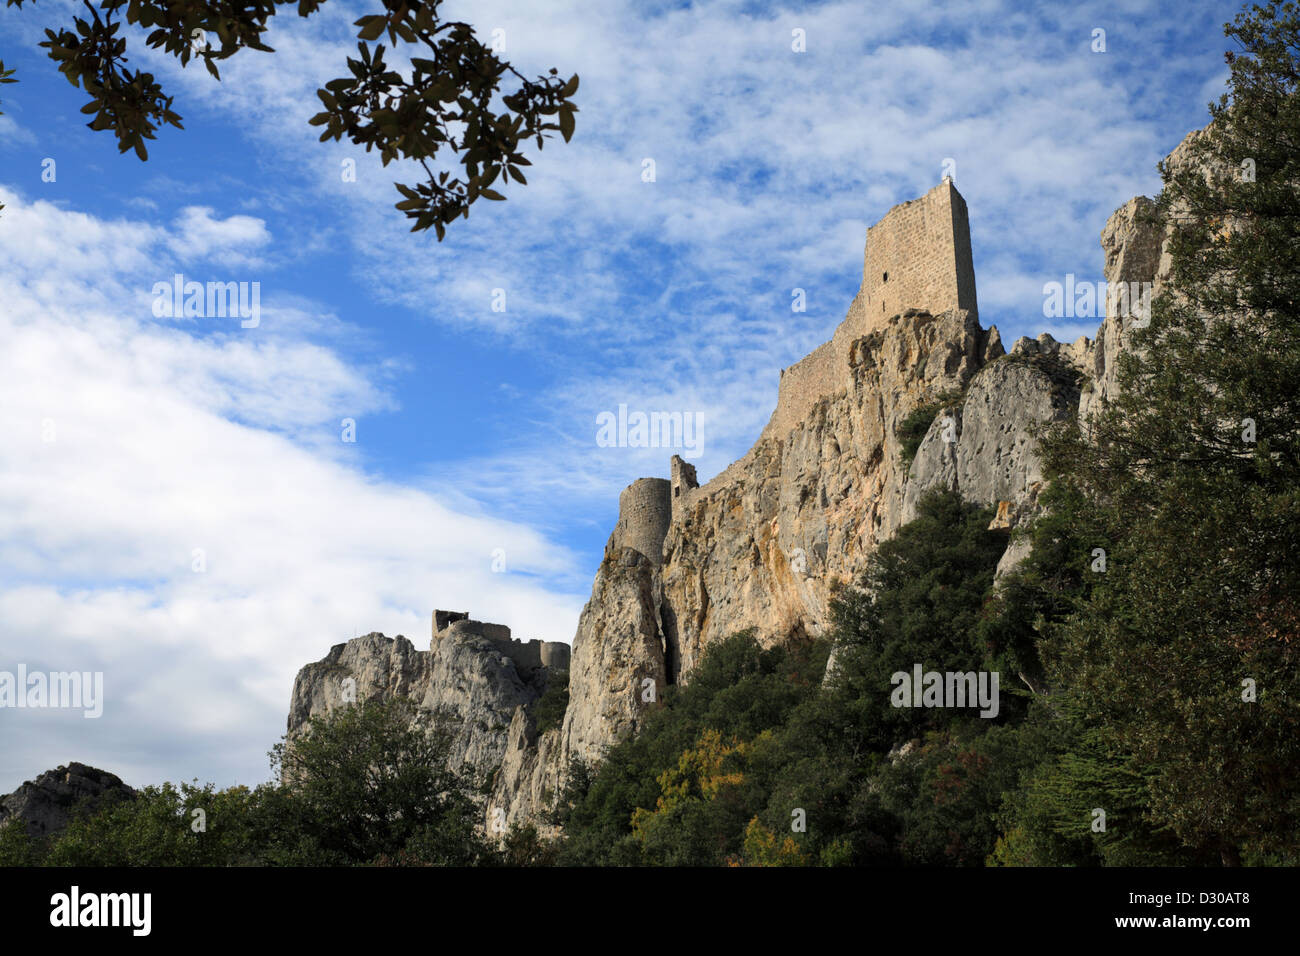 Peyrepertuse one of the Cathar Castles in the Pyrenees Mountains ...